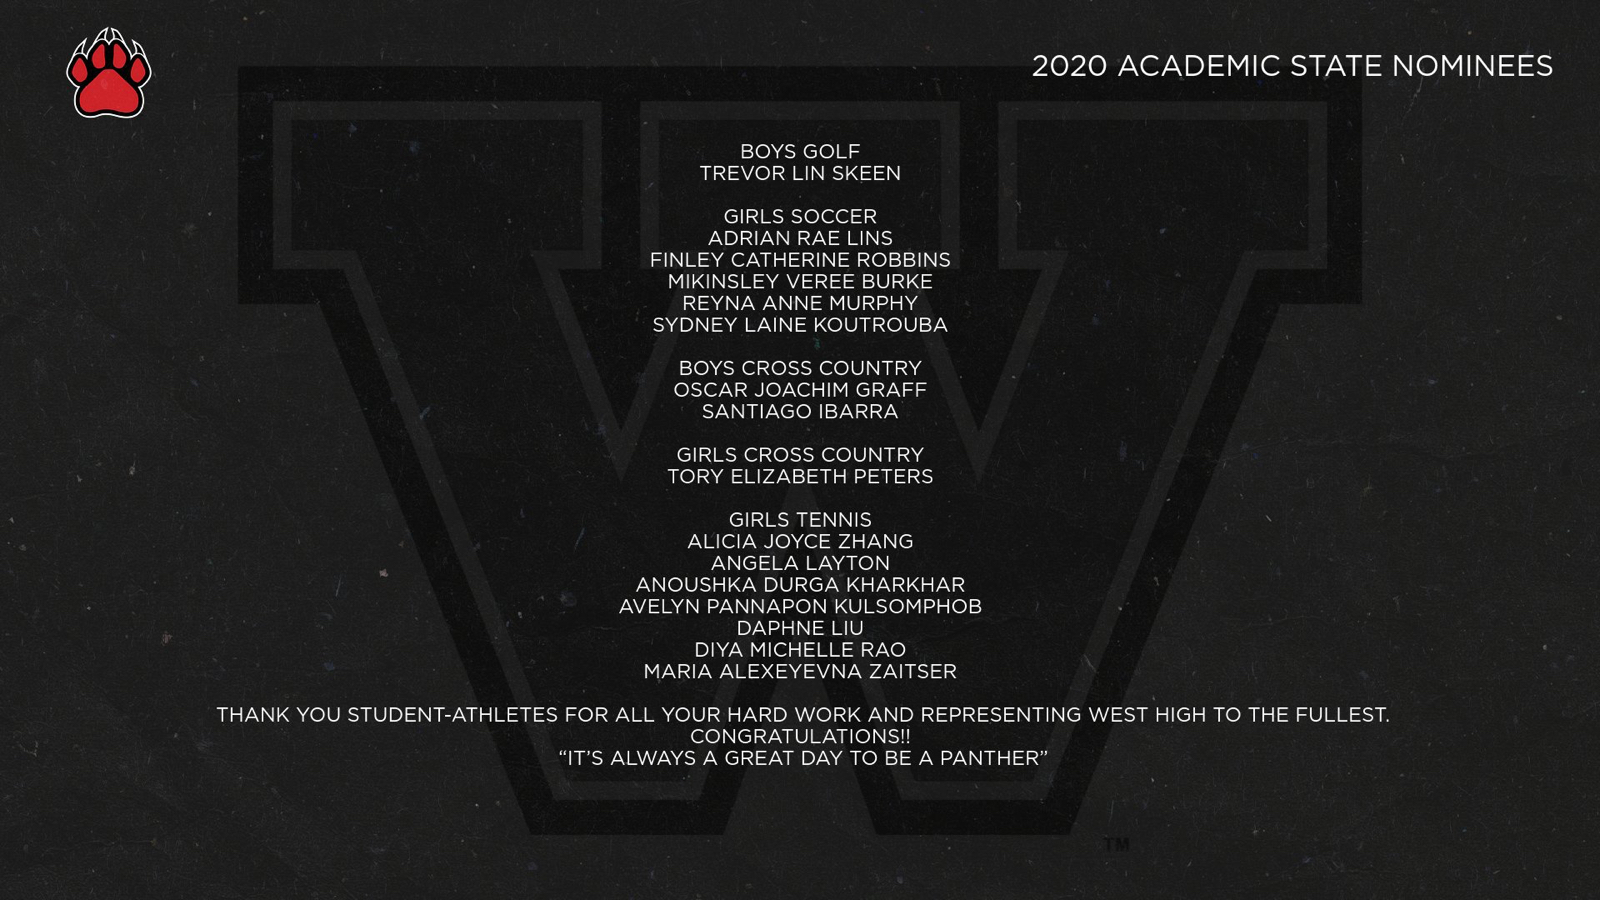 2020 Academic State Nominees